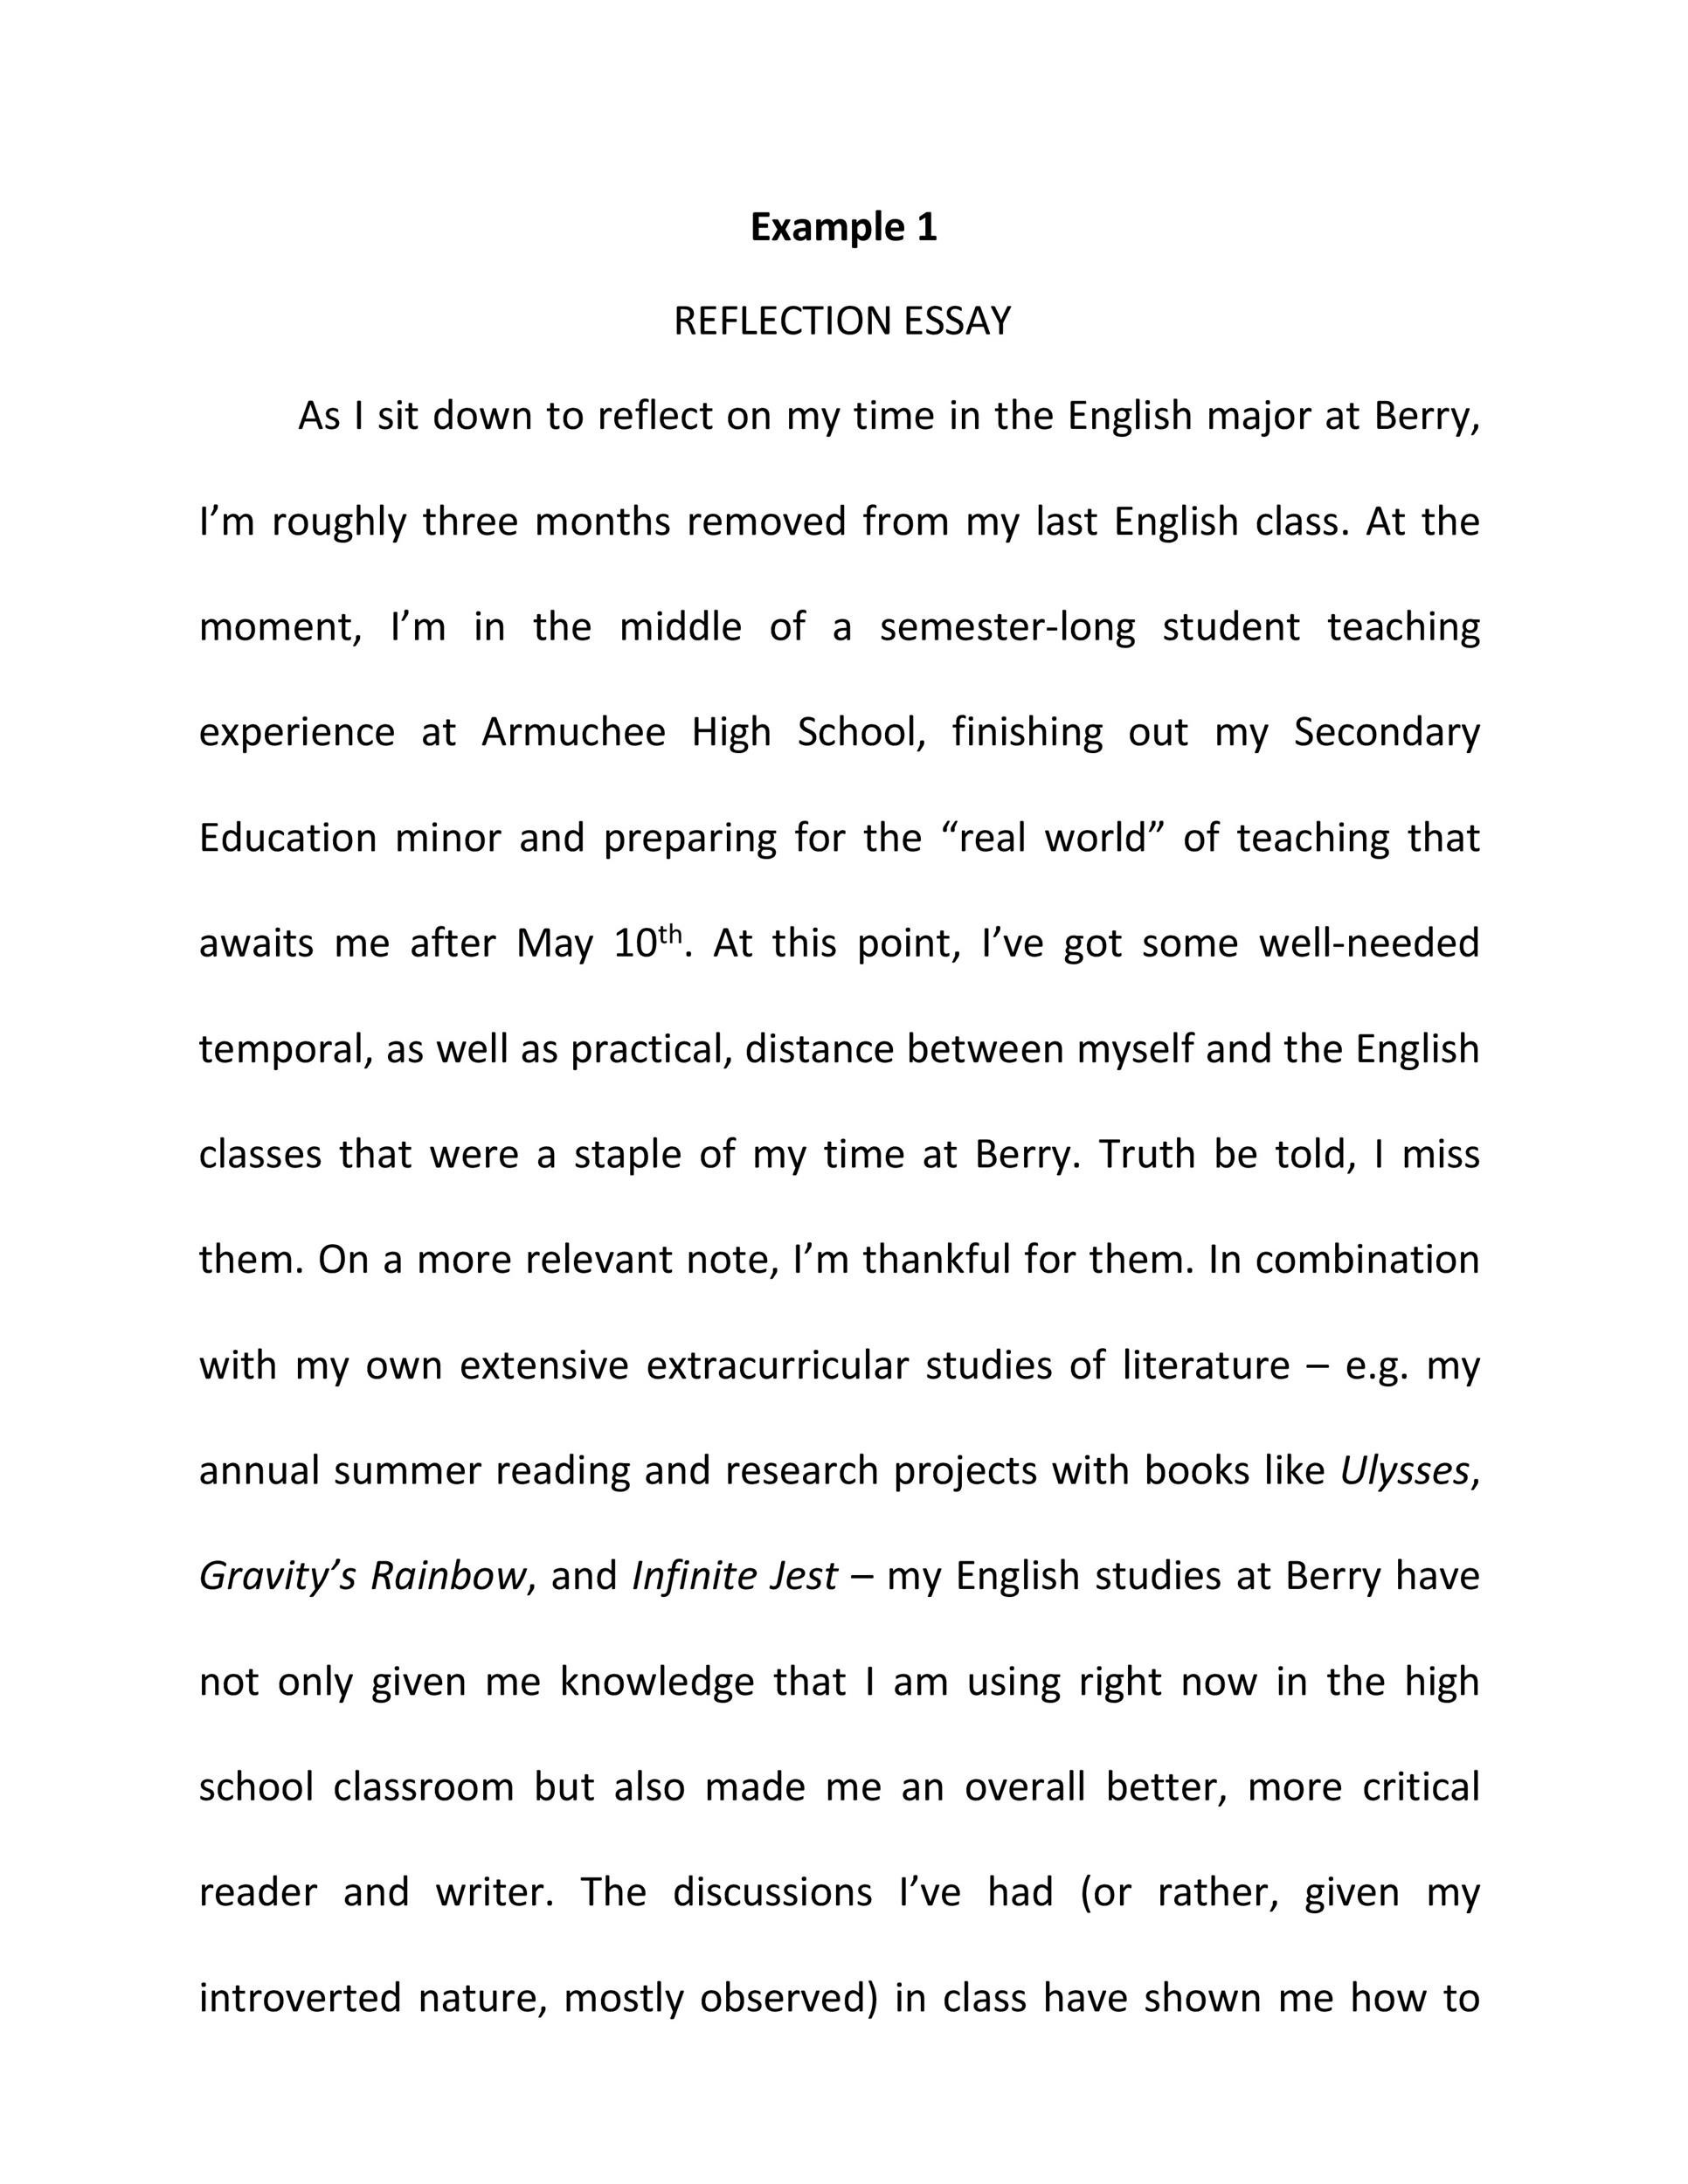 Sample Essay For High School Students  Science And Religion Essay also Critical Essay Thesis Statement  Best Reflective Essay Examples Topic Samples   Science Vs Religion Essay